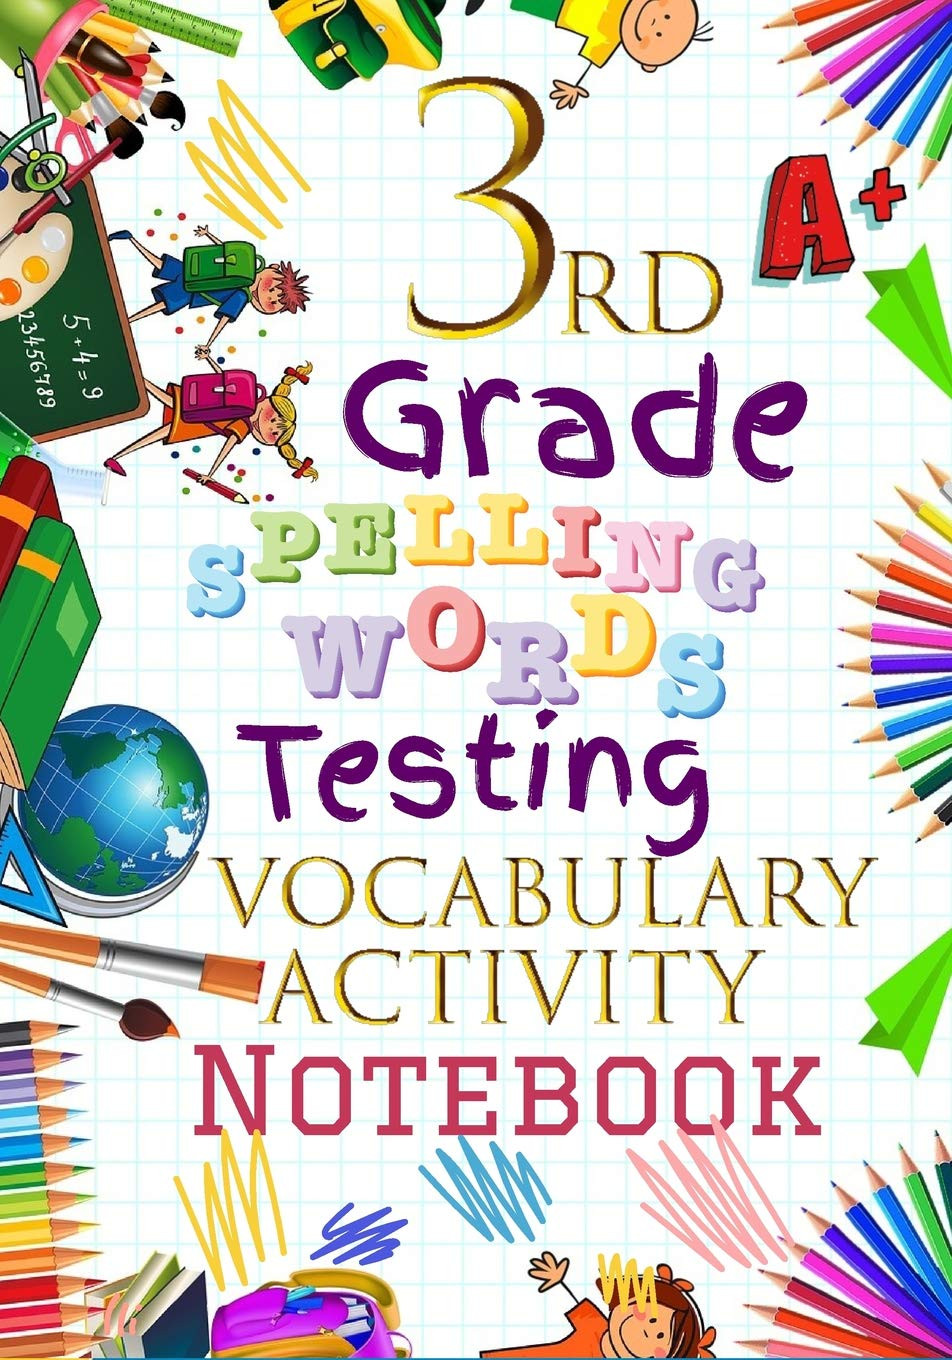 3rd Grade Spelling Worksheets 3rd Grade Spelling Words Testing Vocabulary Activity